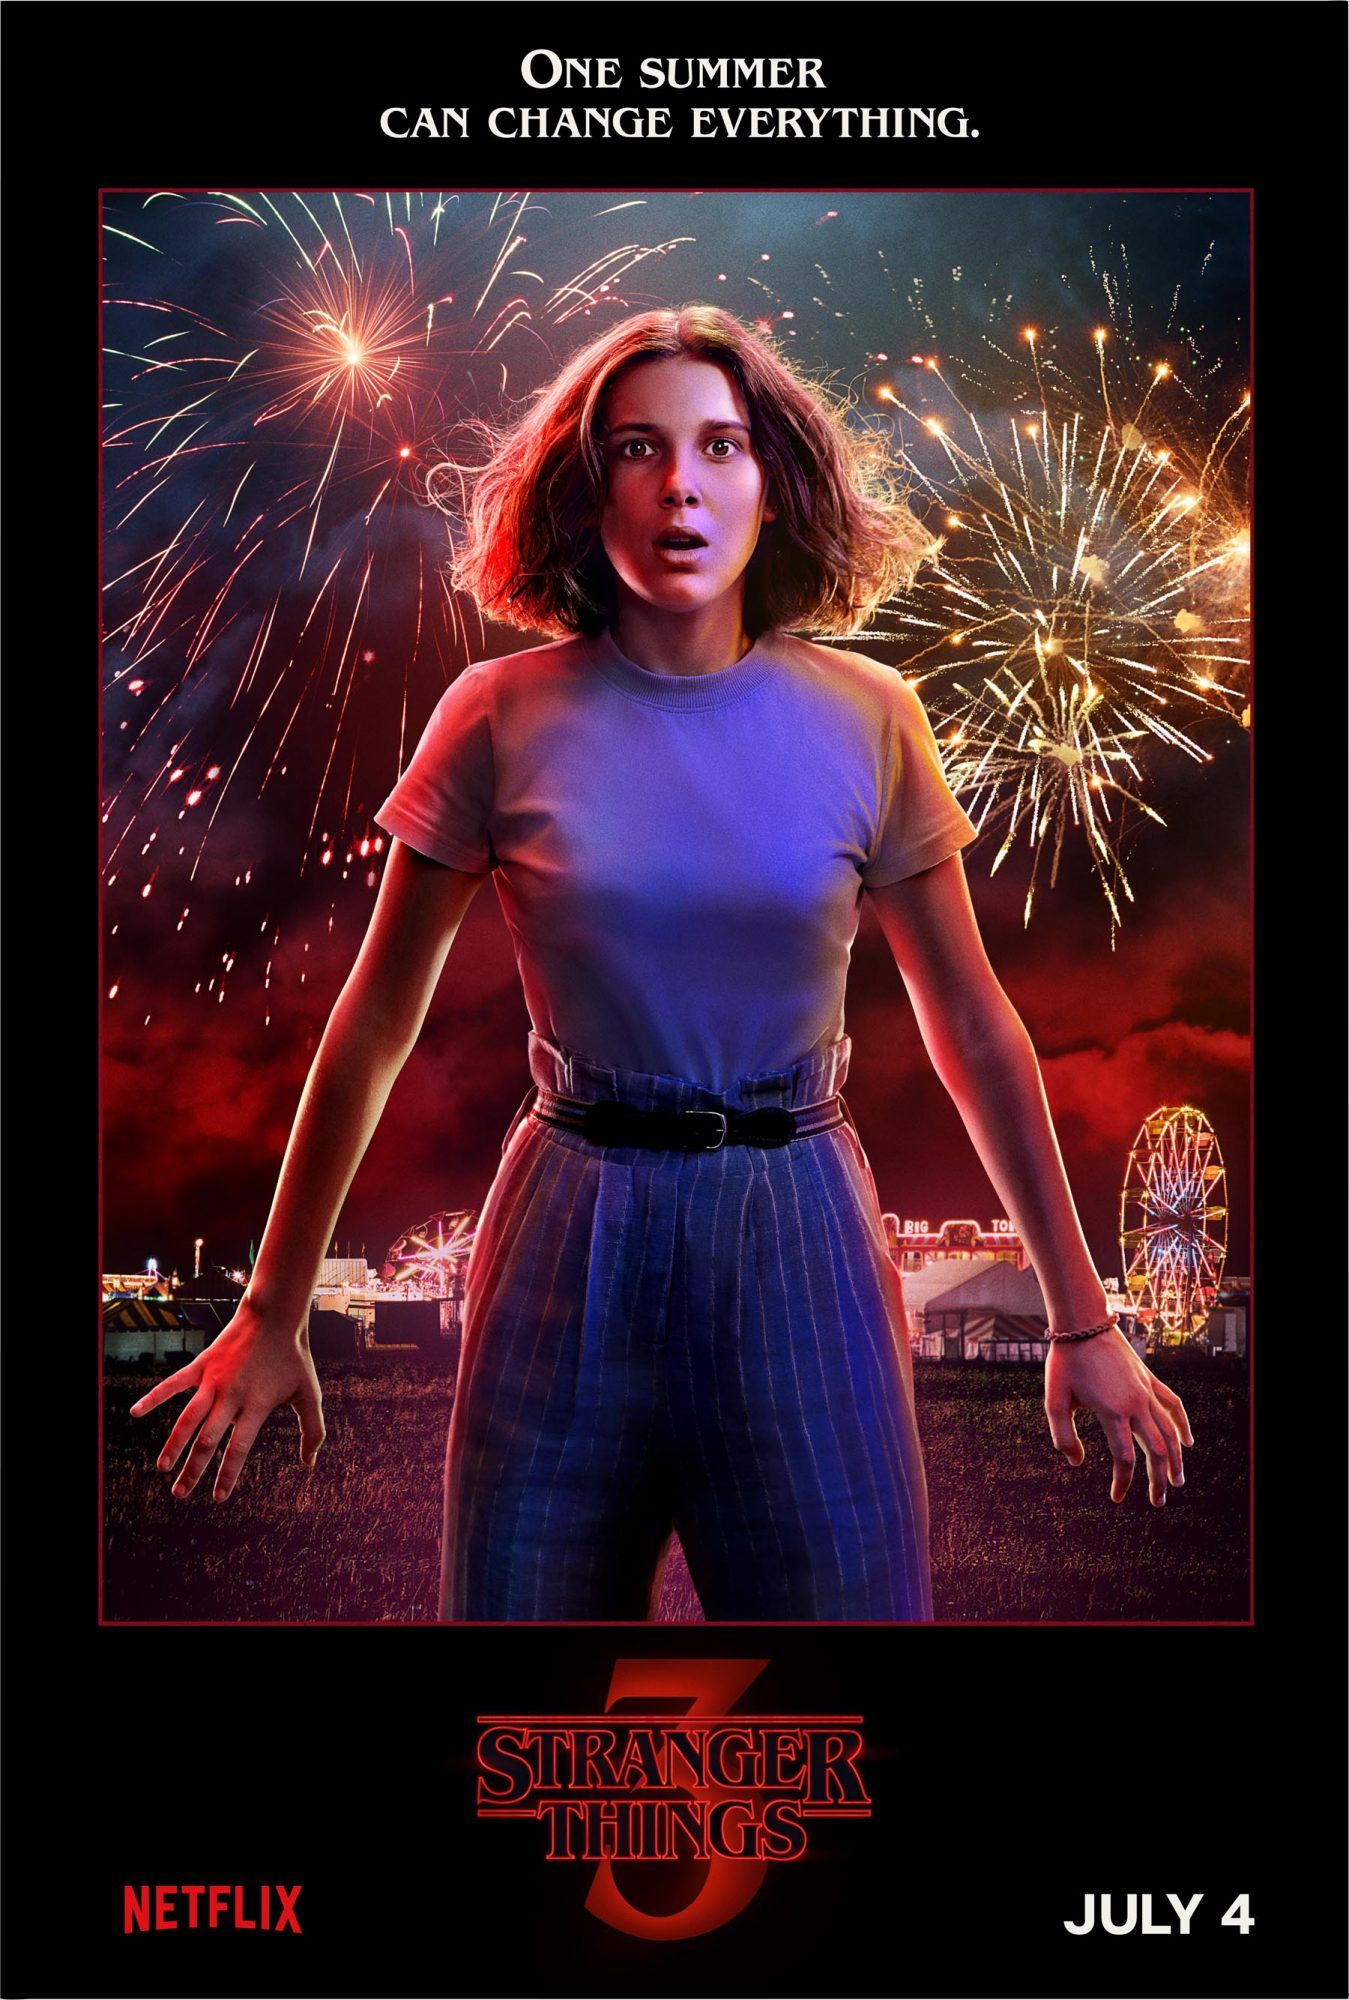 Stranger Things 3 Debuts Posters And Scene From The Premiere Ew Com All the fan favorites, like eleven (millie bobby brown), mike (finn wolfhard). stranger things 3 debuts posters and